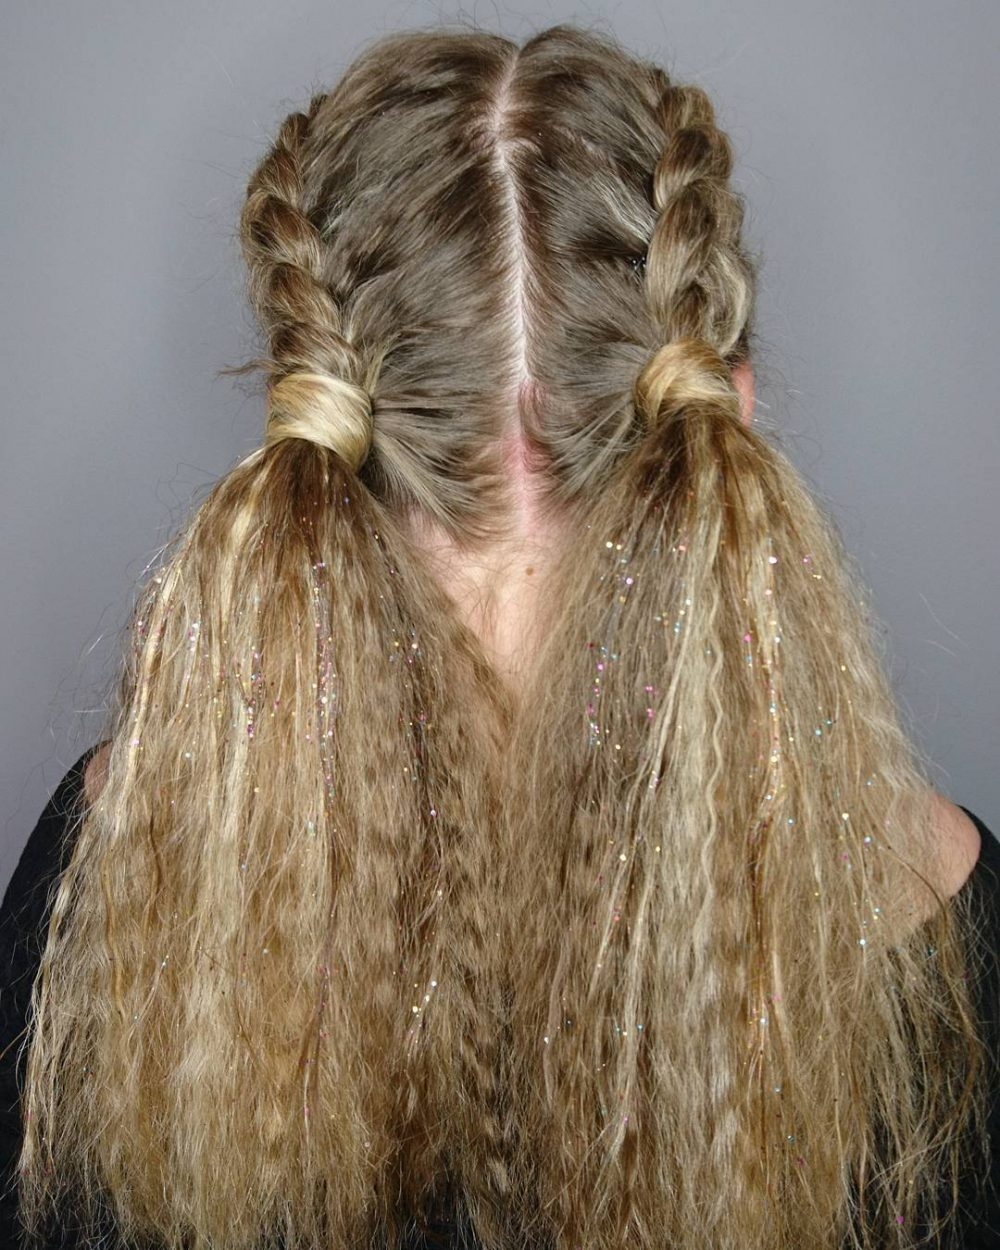 Playful Pigtails hairstyle